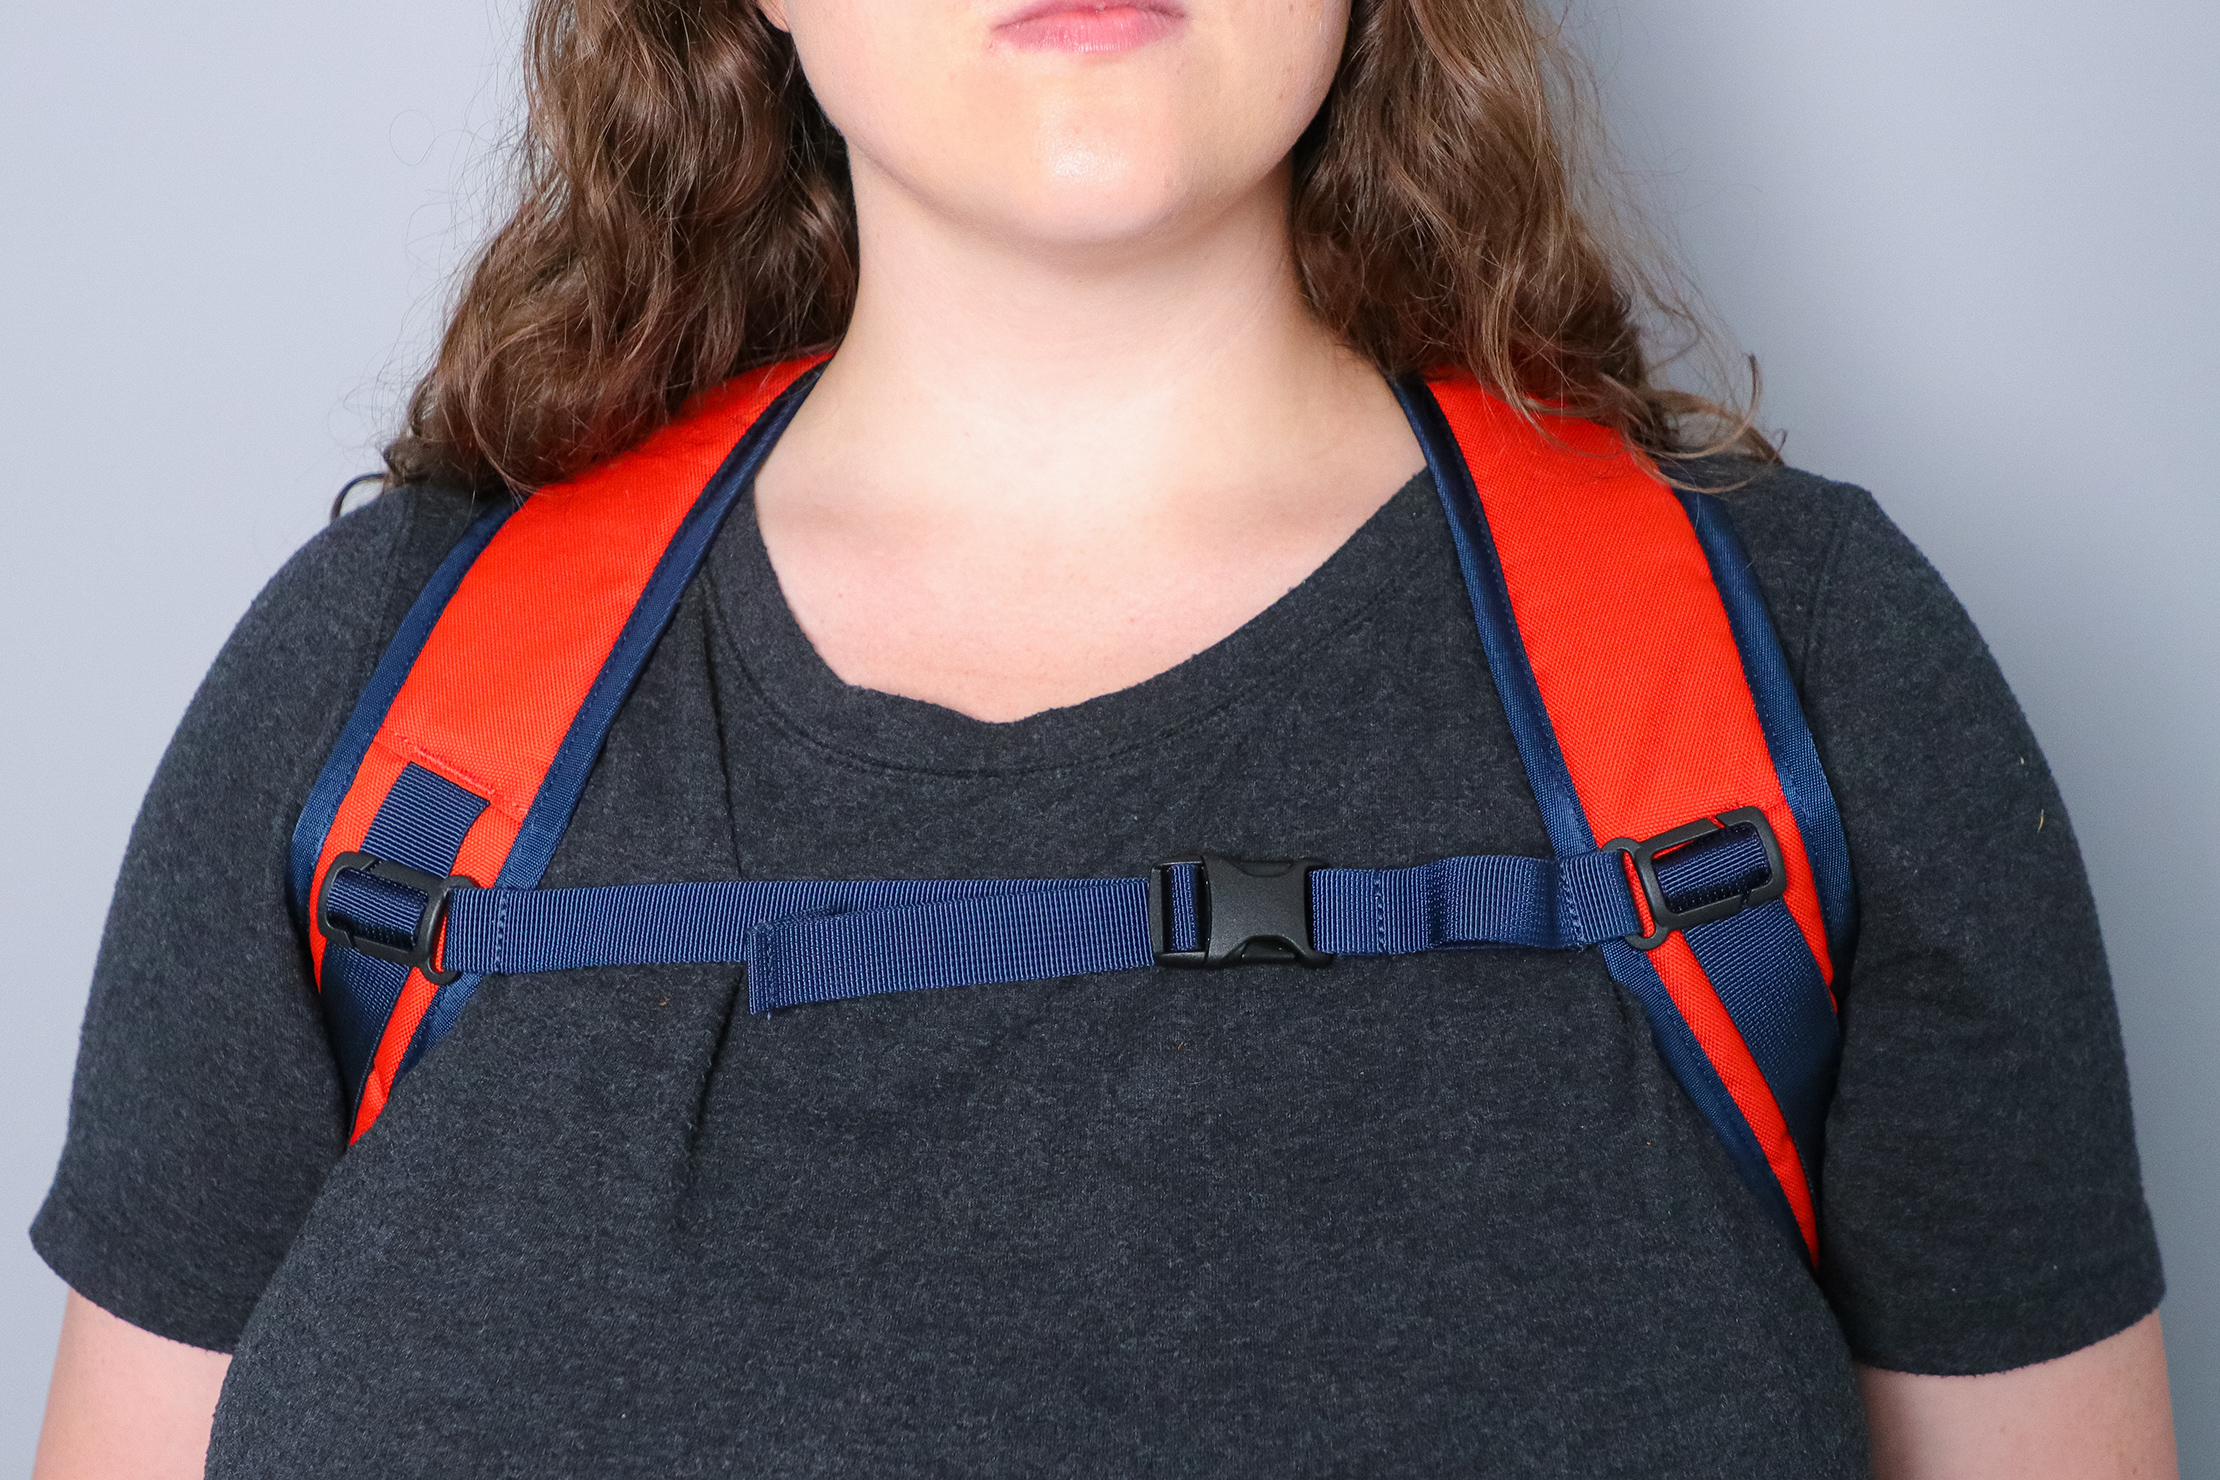 United By Blue 15L Commuter Backpack Straps